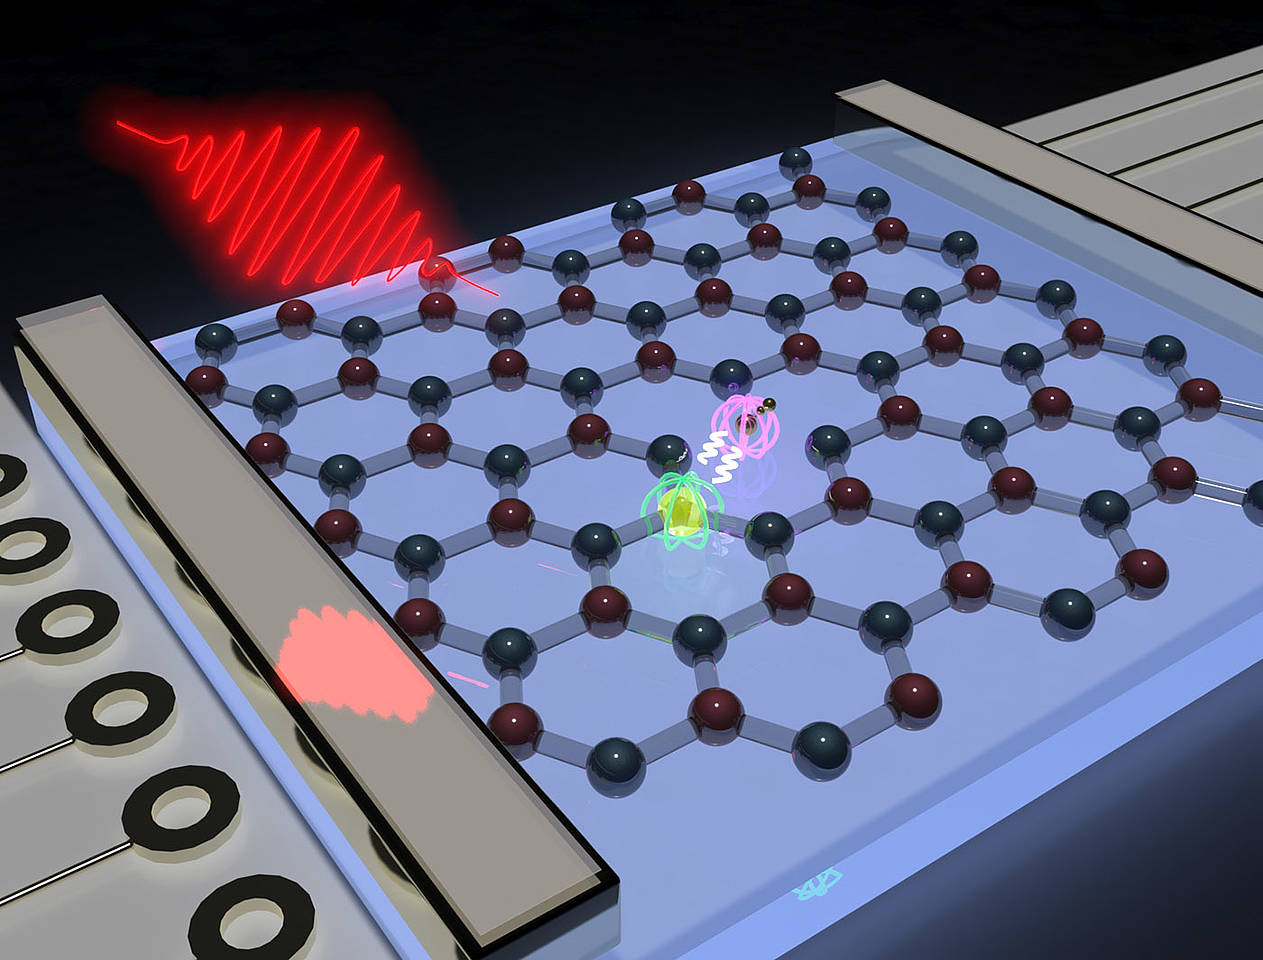 Atomic thin layer of boron nitride with a spin center formed by the boron vacancy